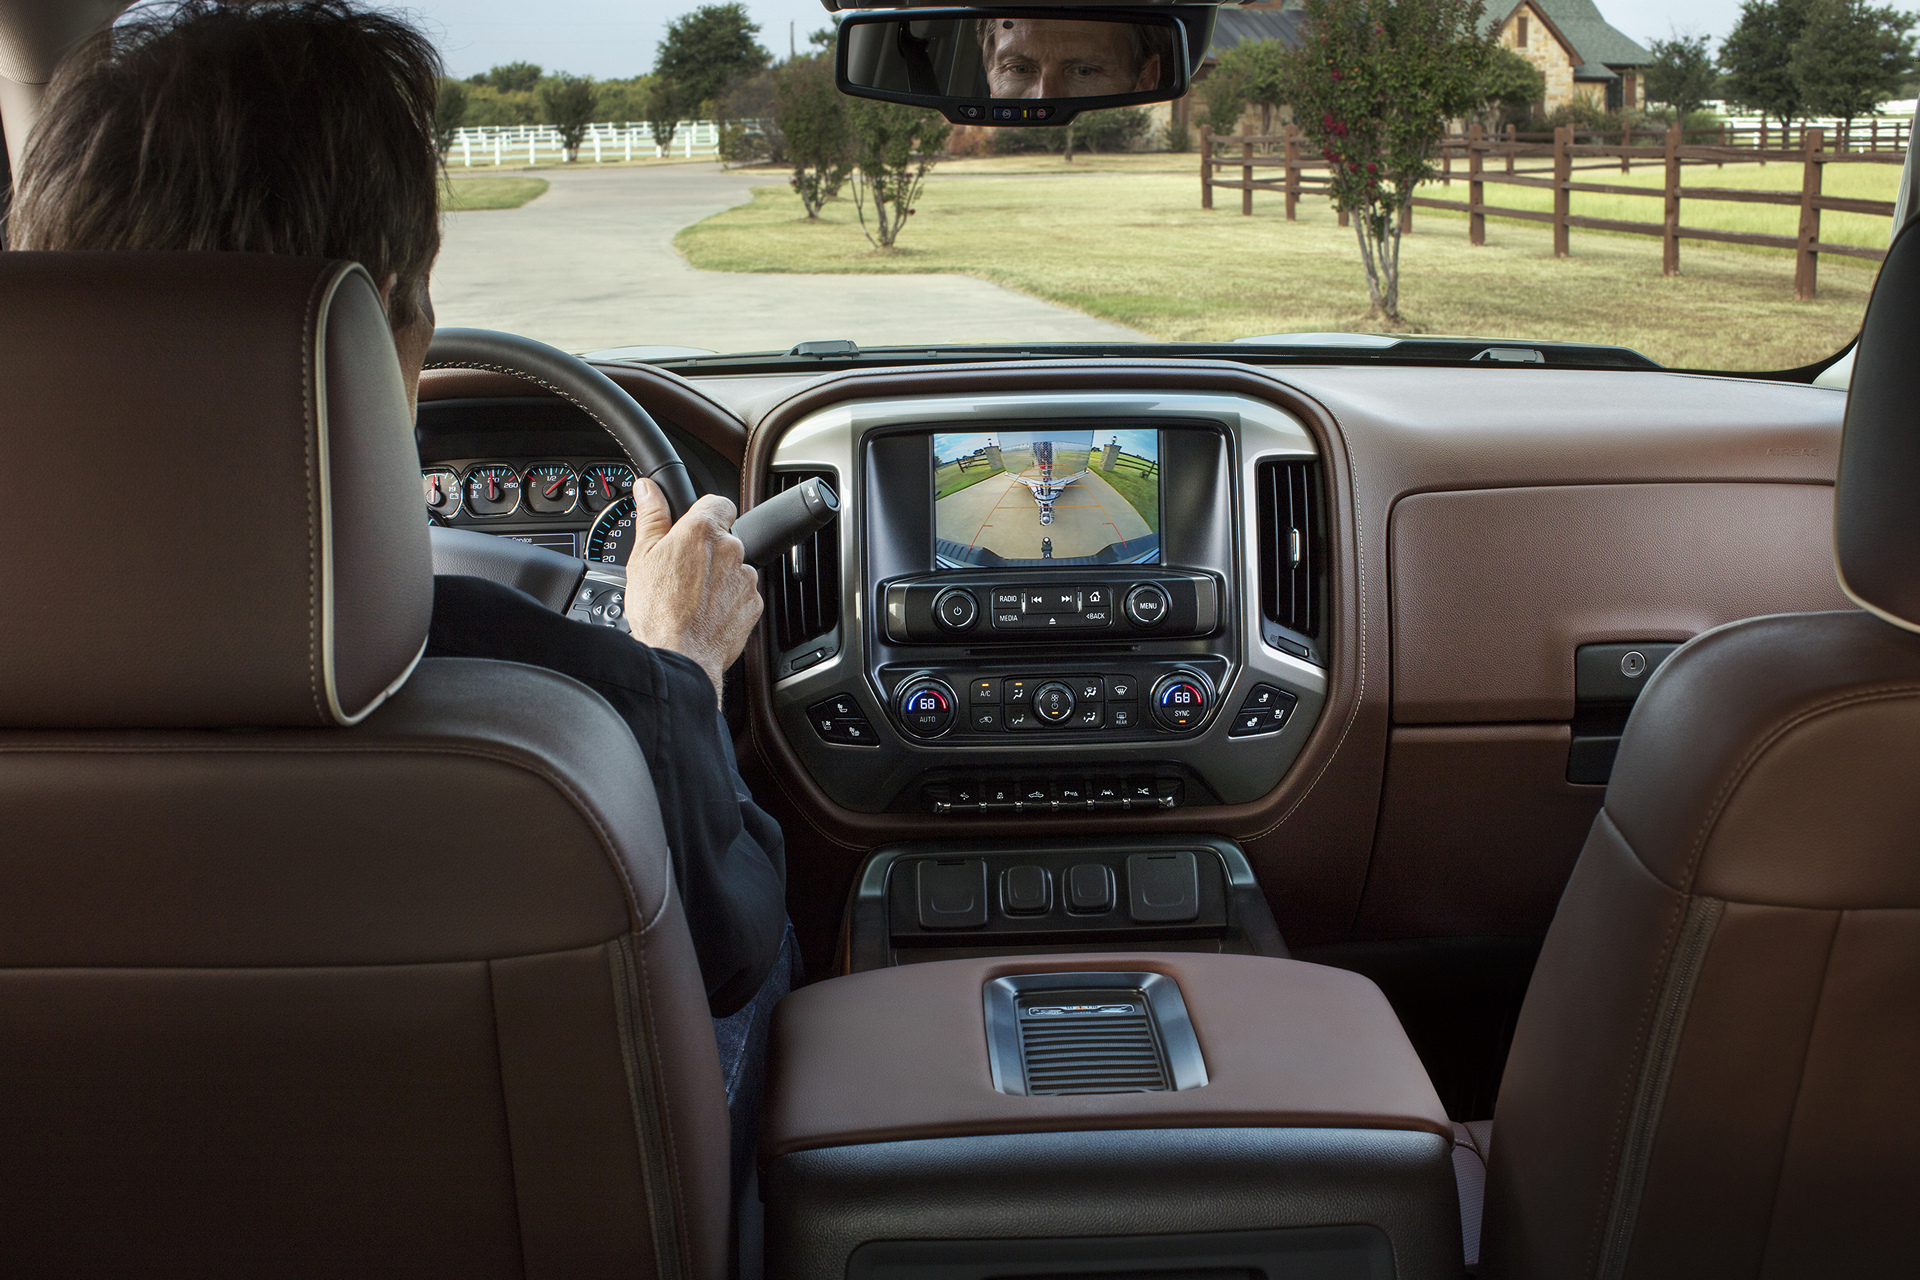 2016 chevrolet silverado review carrrs auto portal for Chevrolet silverado high country interior